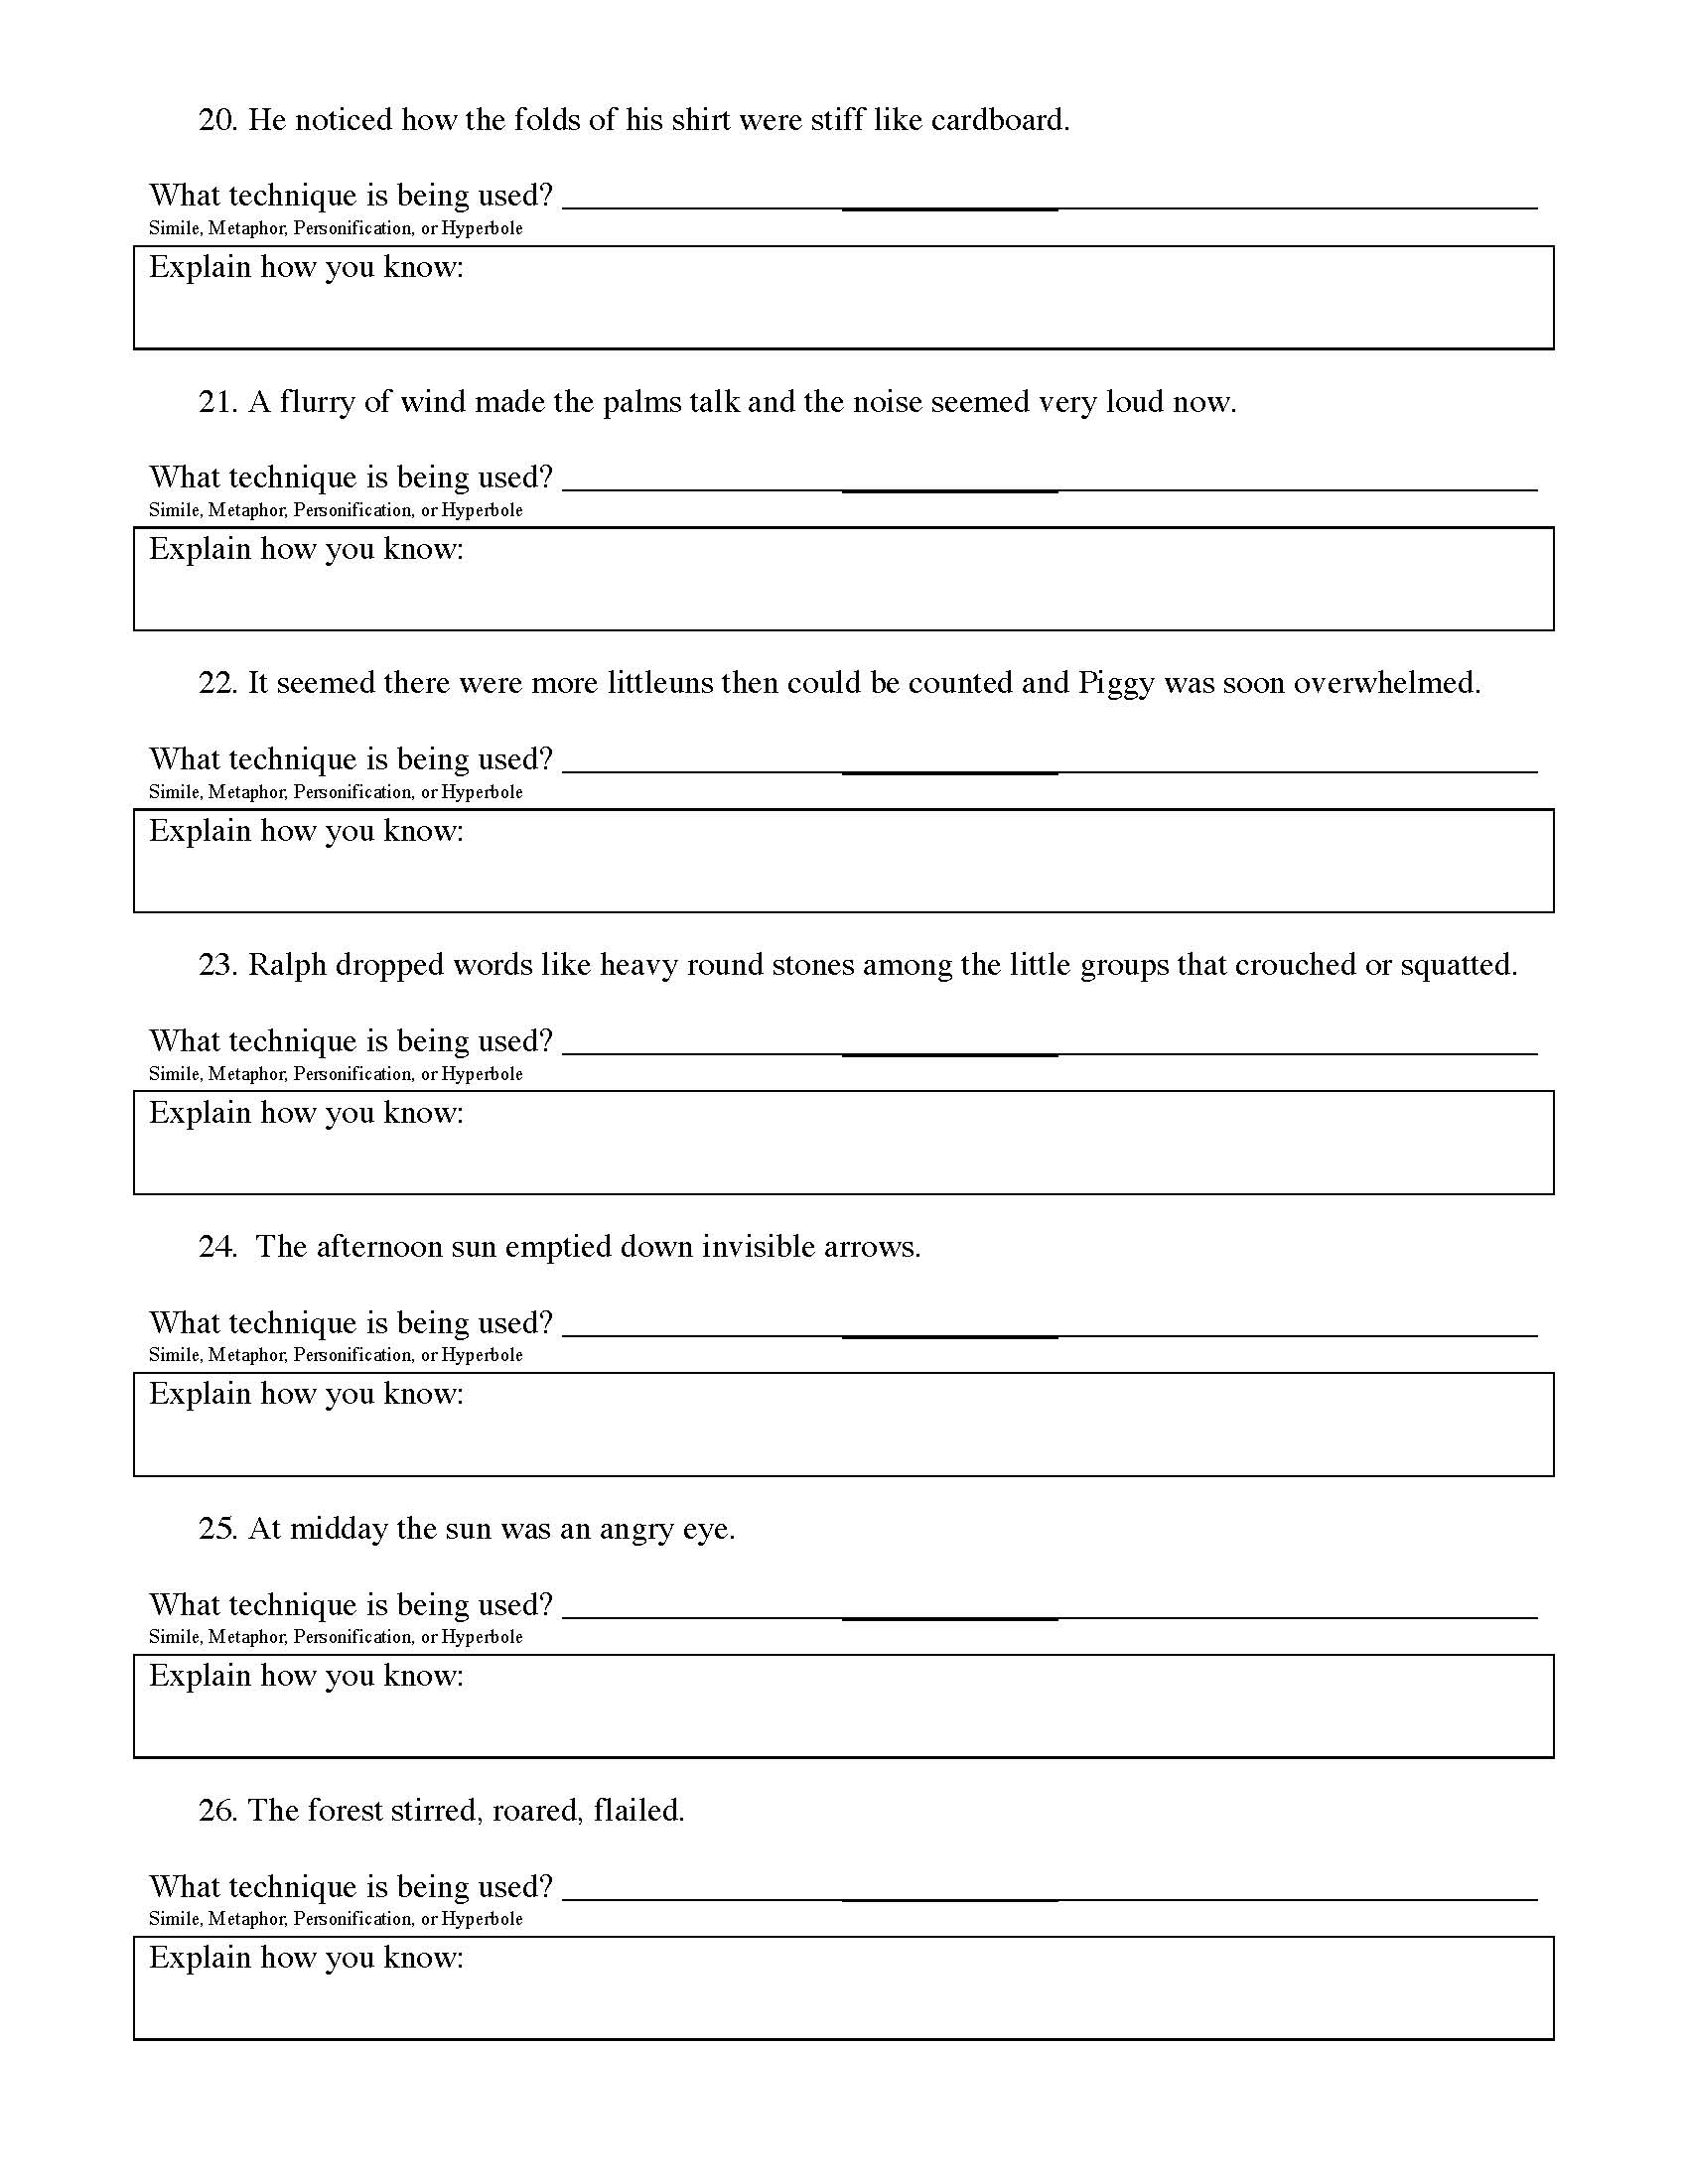 Printables Of Lord Of The Flies Figurative Language